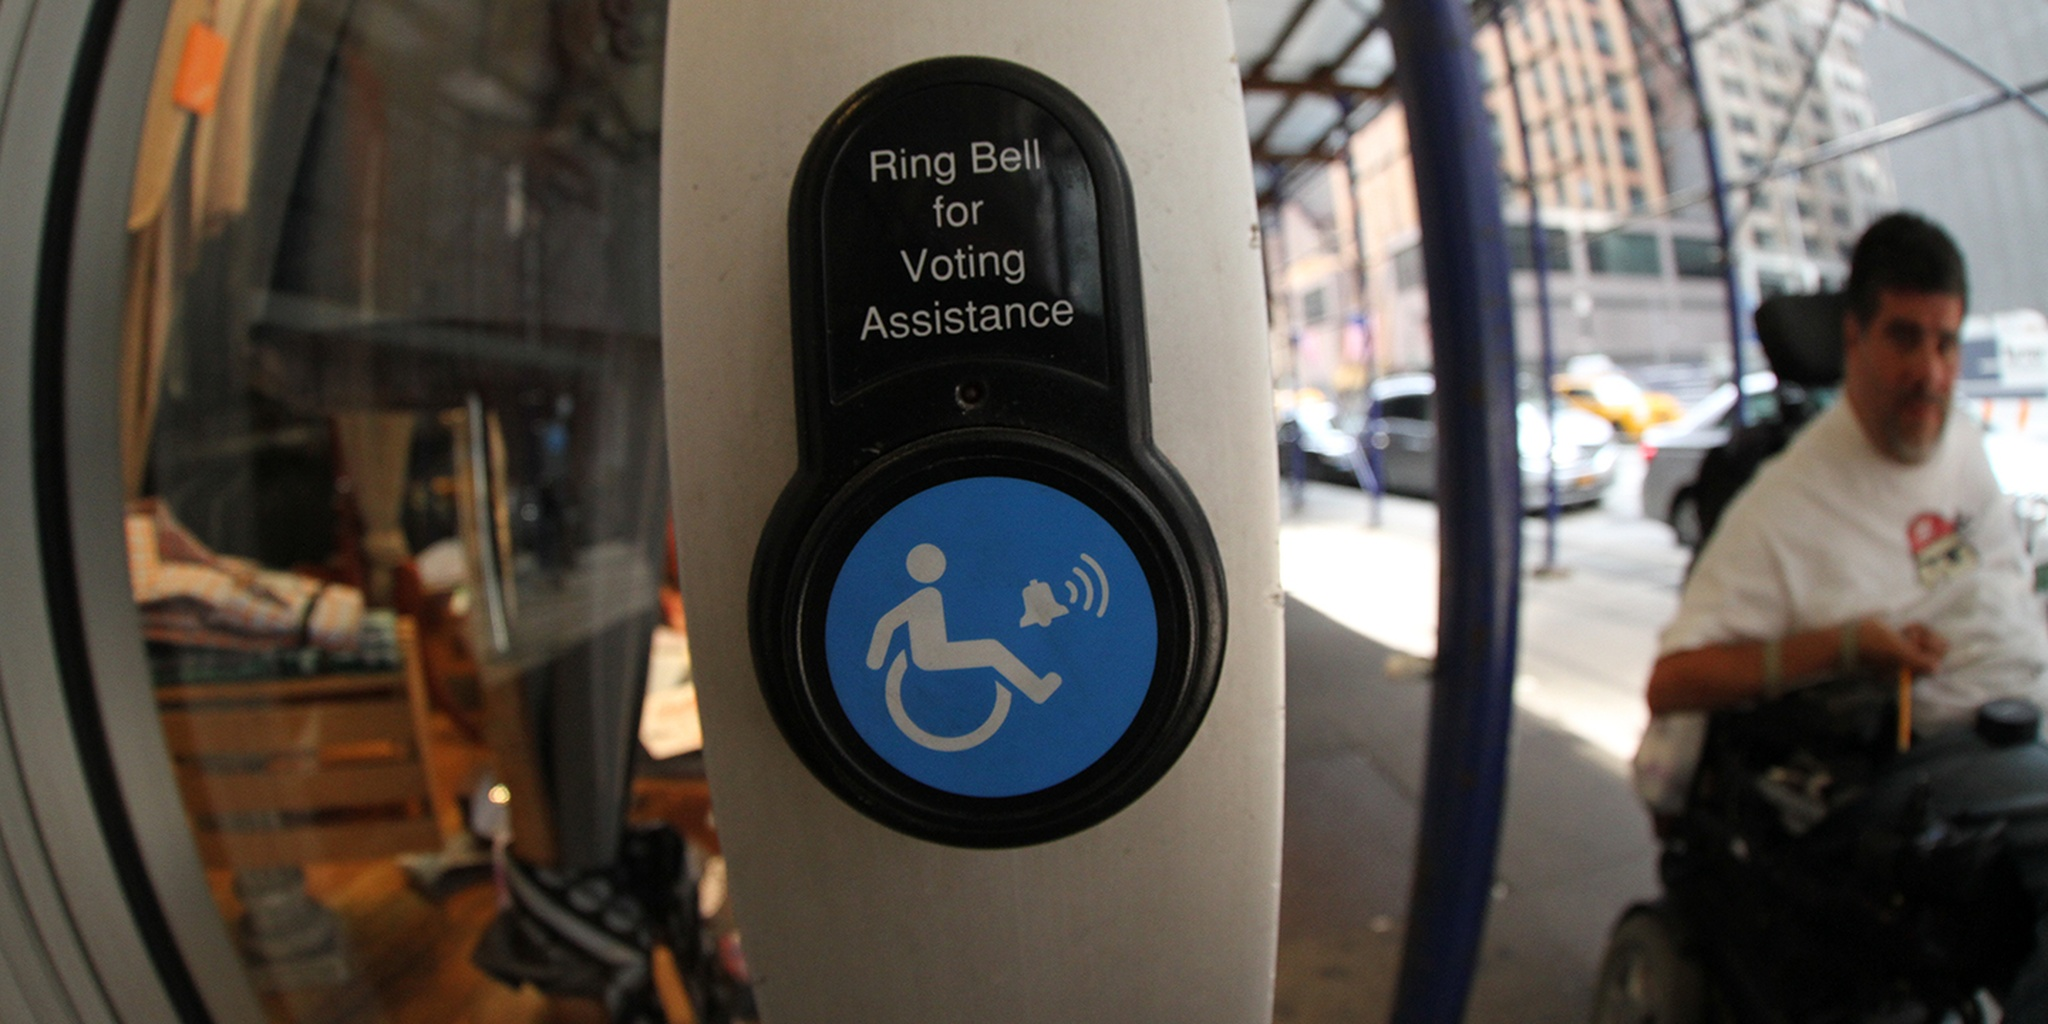 Disabled symbol with